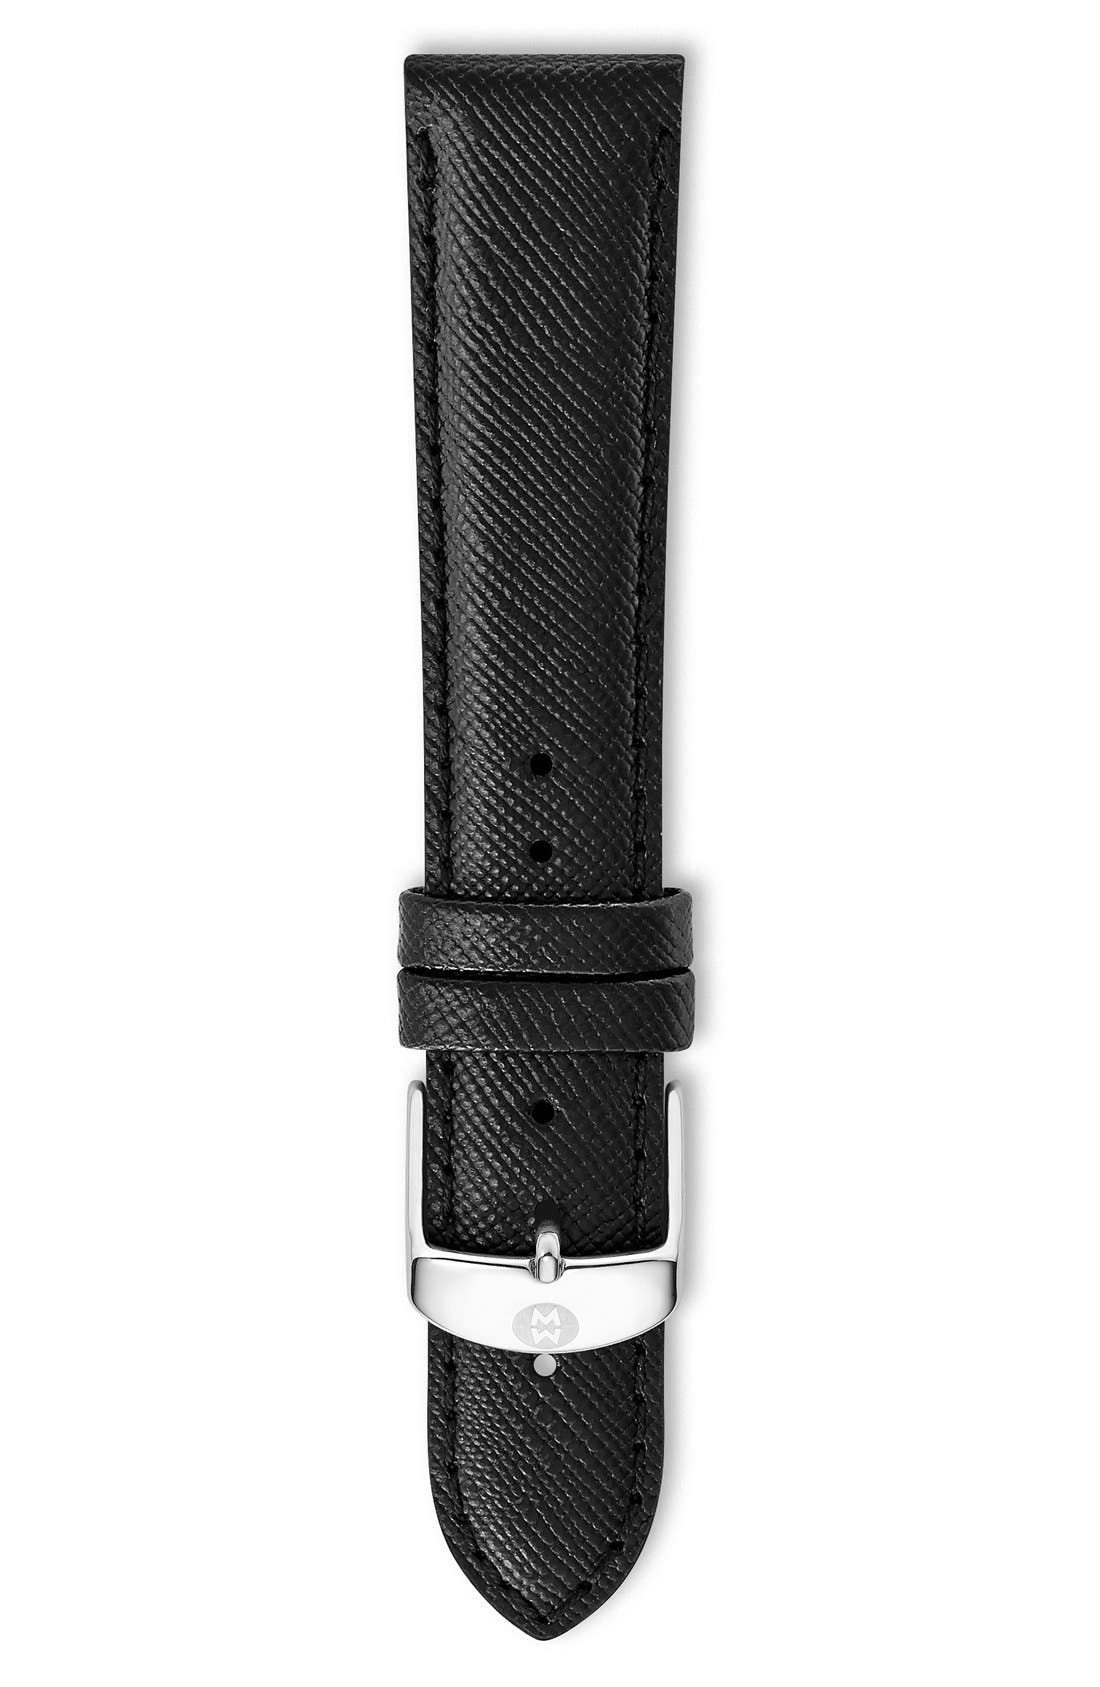 16mm Saffiano Leather Watch Strap,                         Main,                         color, Jet Black